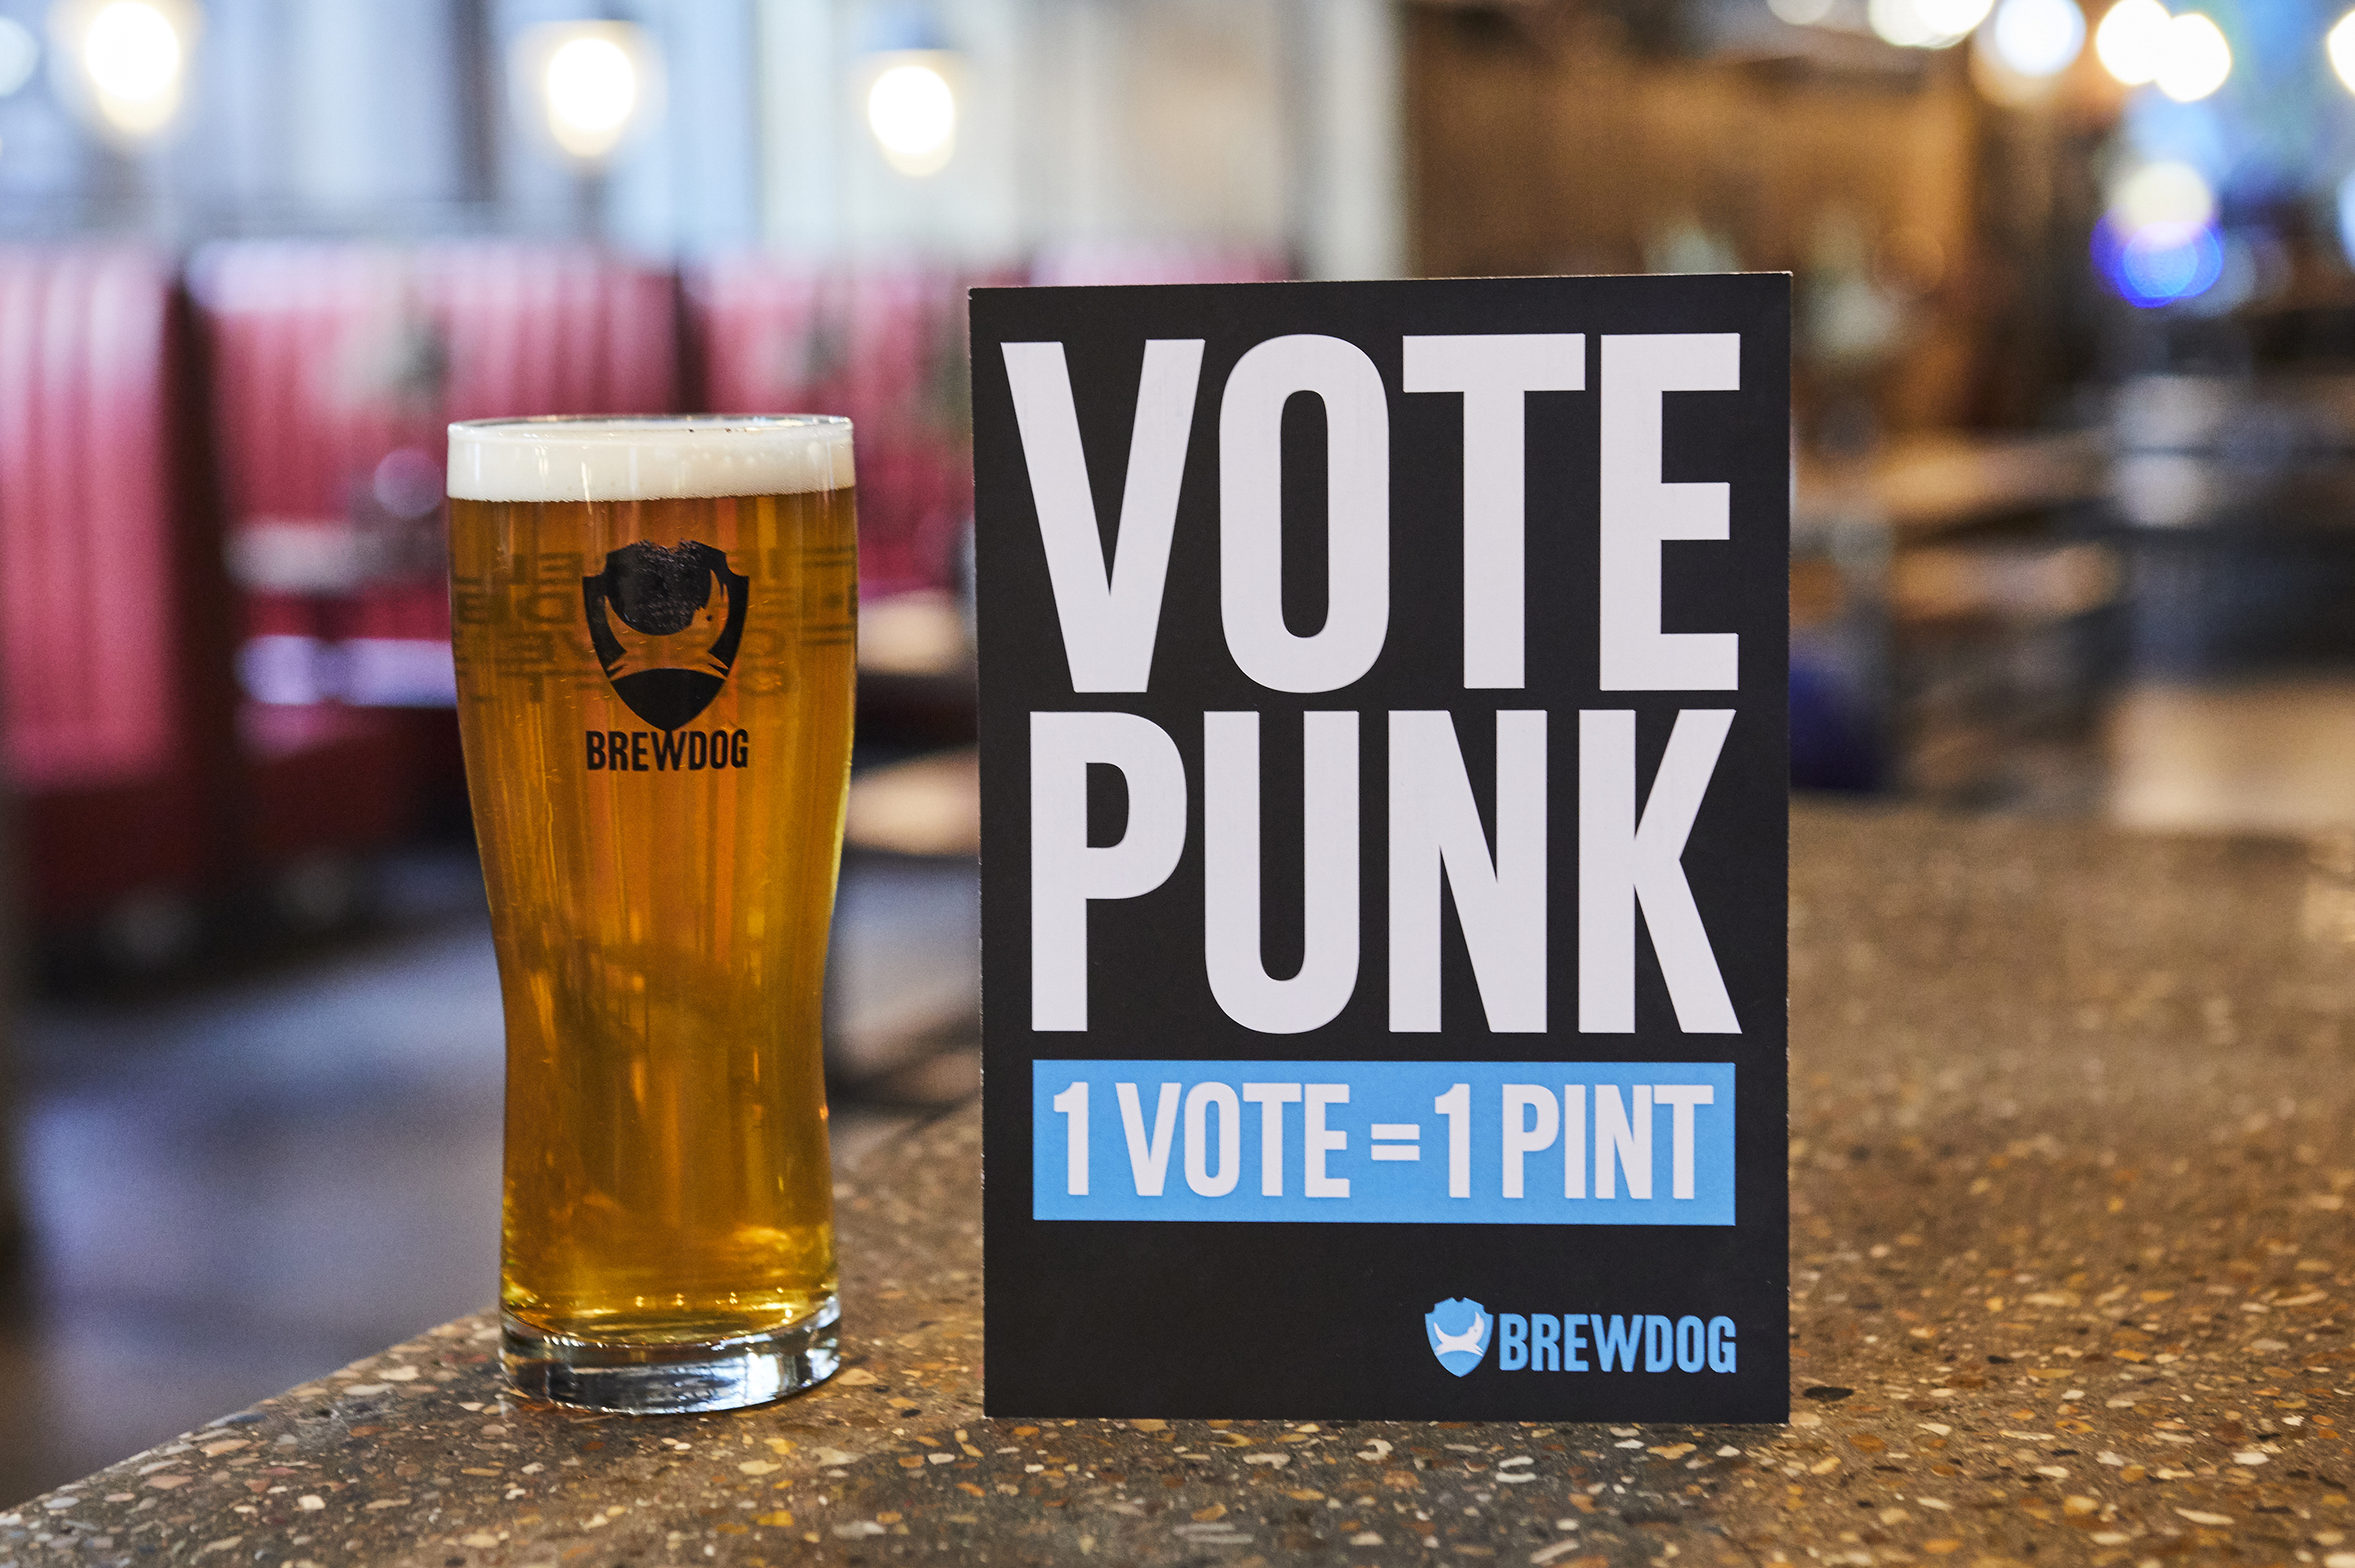 vote punk leicester